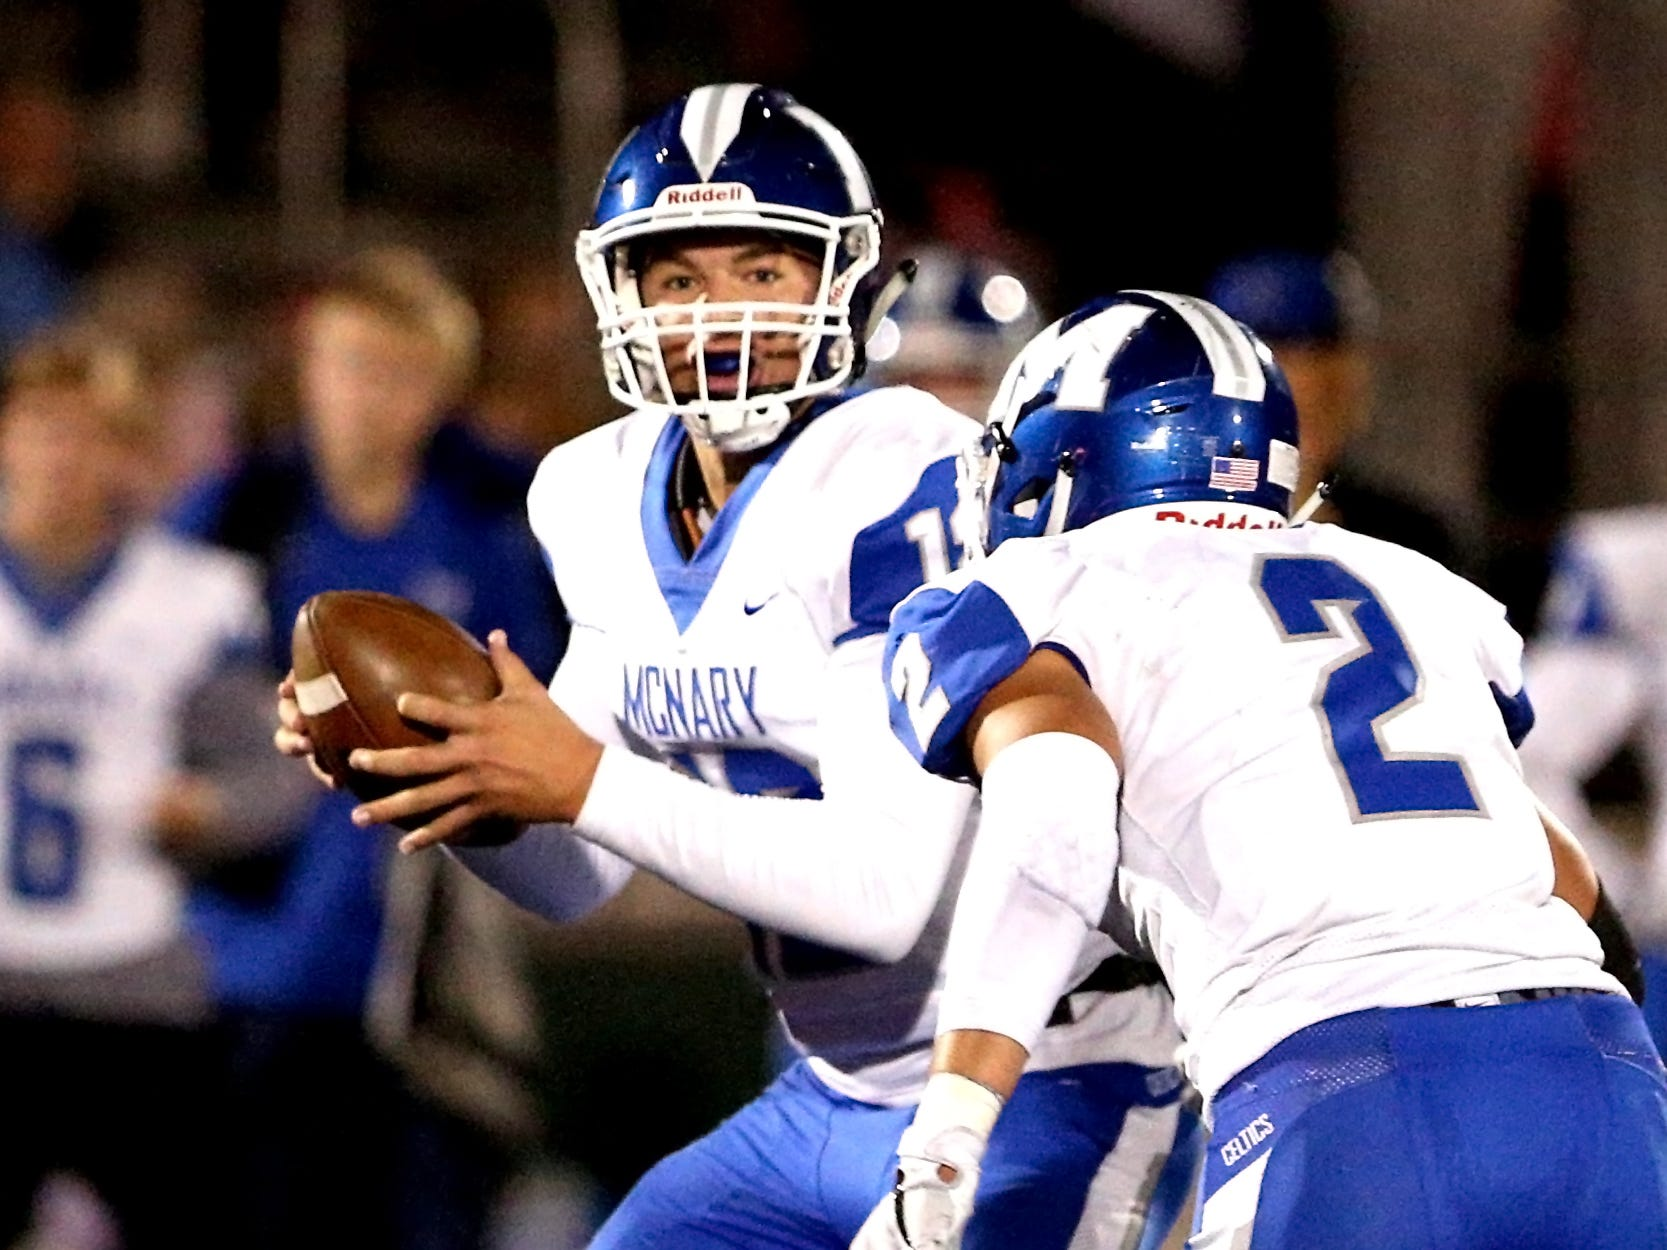 McNary's Erik Barker (12) looks to make a pass during the first half of the McNary vs. West Salem football game at West Salem High School on Friday, Oct. 19.